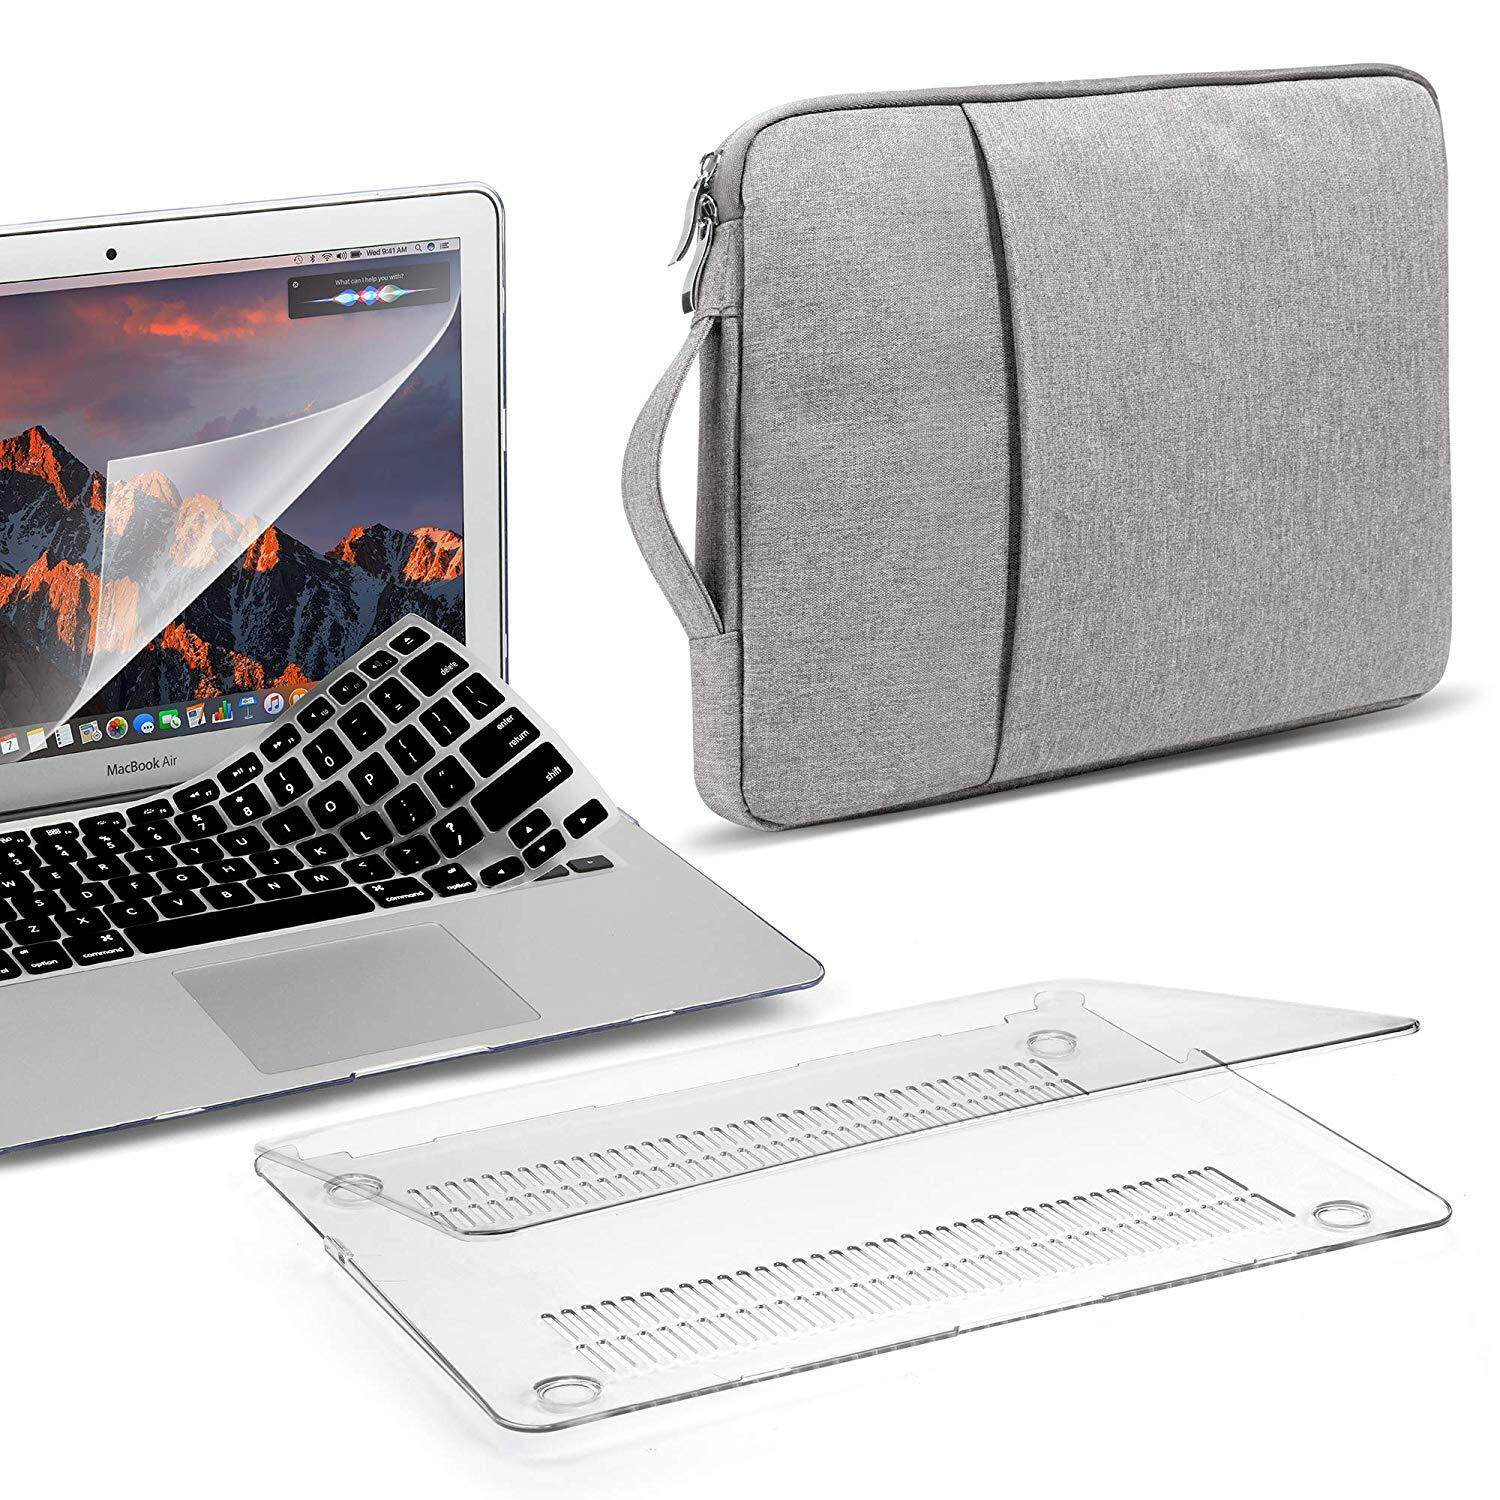 new concept 21f70 6c2d2 OEM Philippines - OEM Apple Mac Hard Covers for sale - prices ...